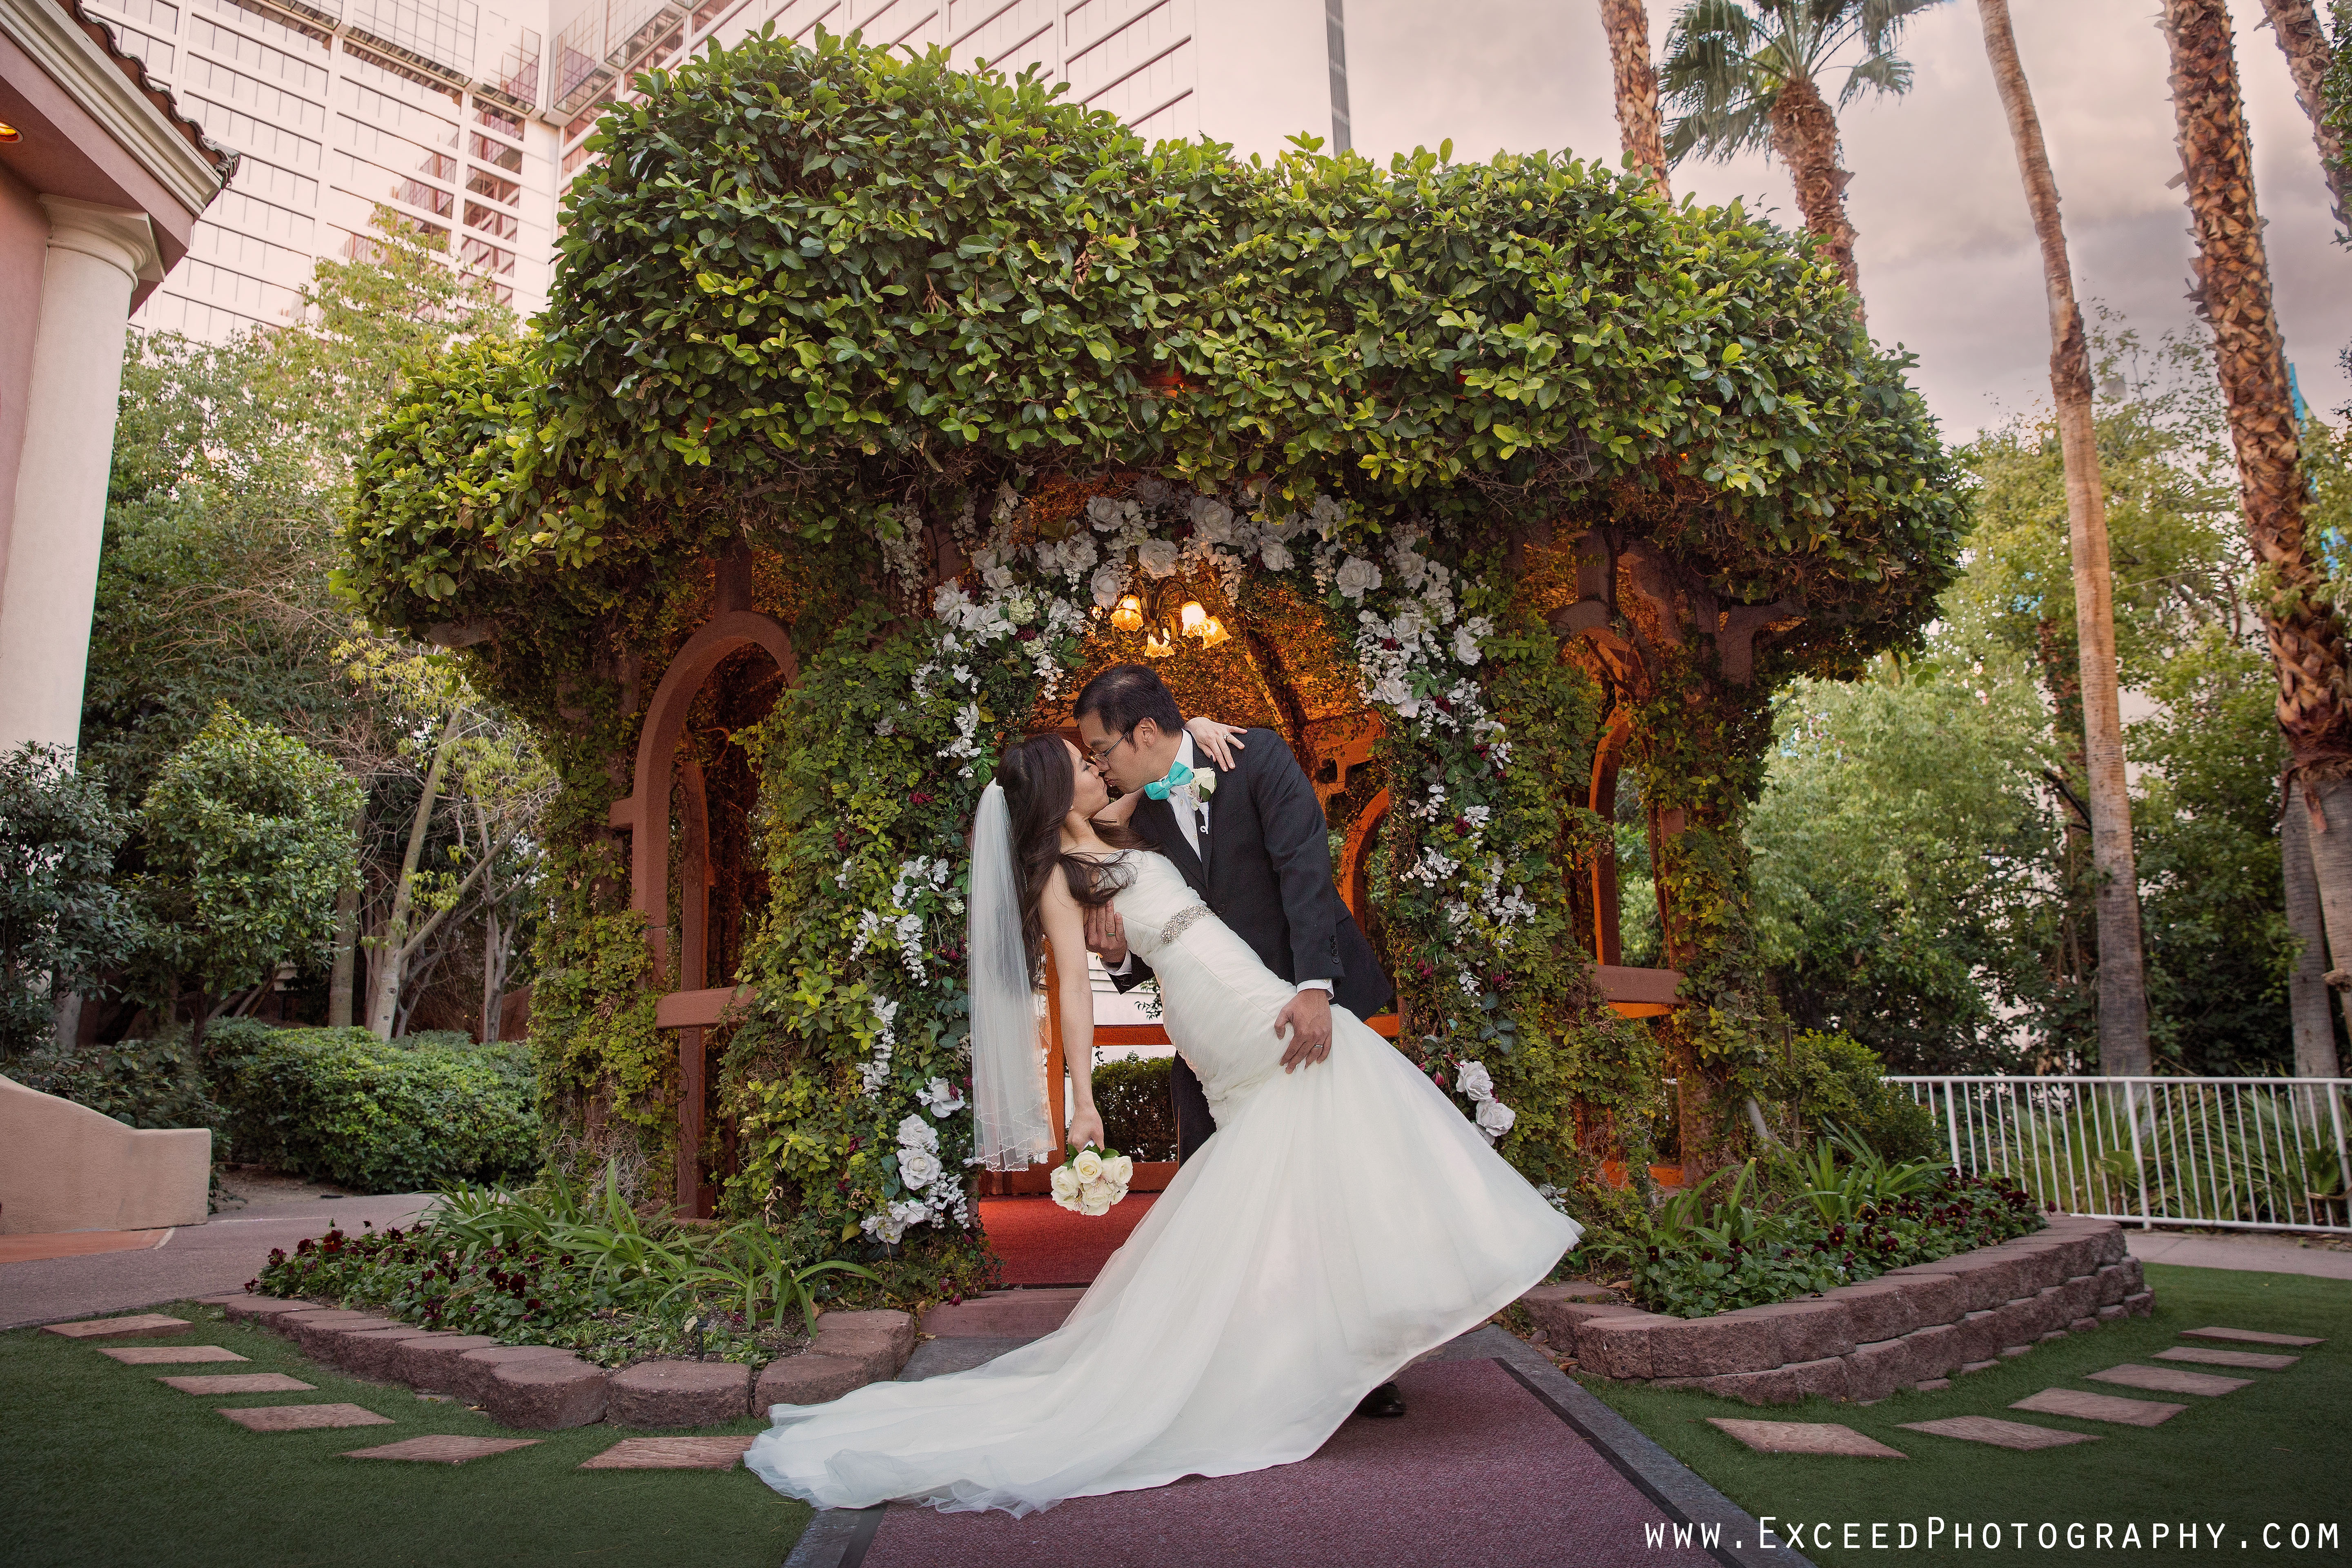 Flamingo Wedding Ceremony And The Reception At Sparklings Las Vegas